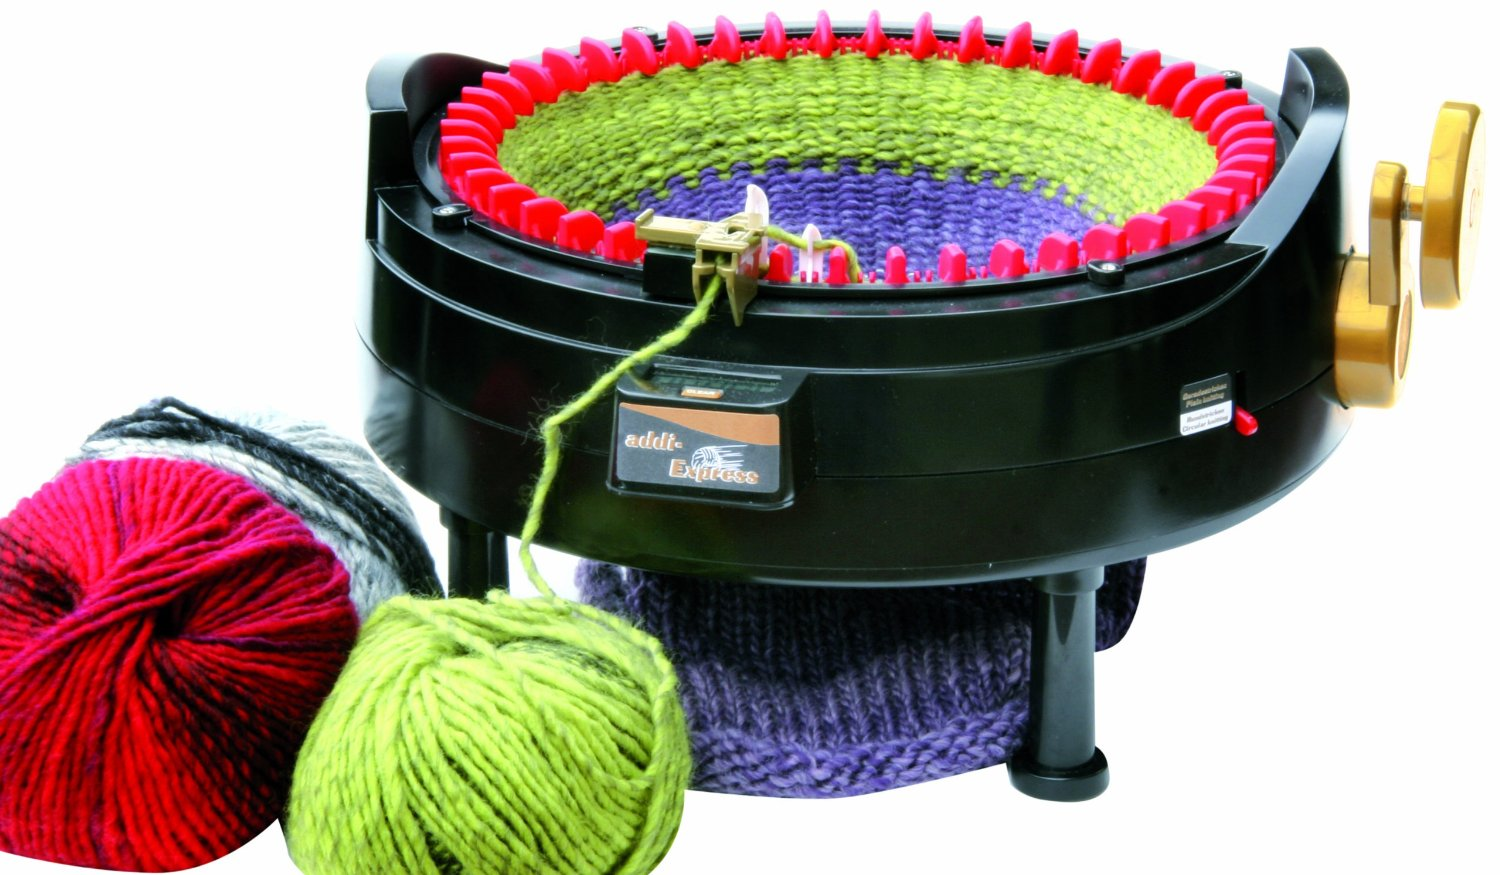 Knitting Machines : Addi express king knitting machine kit needles